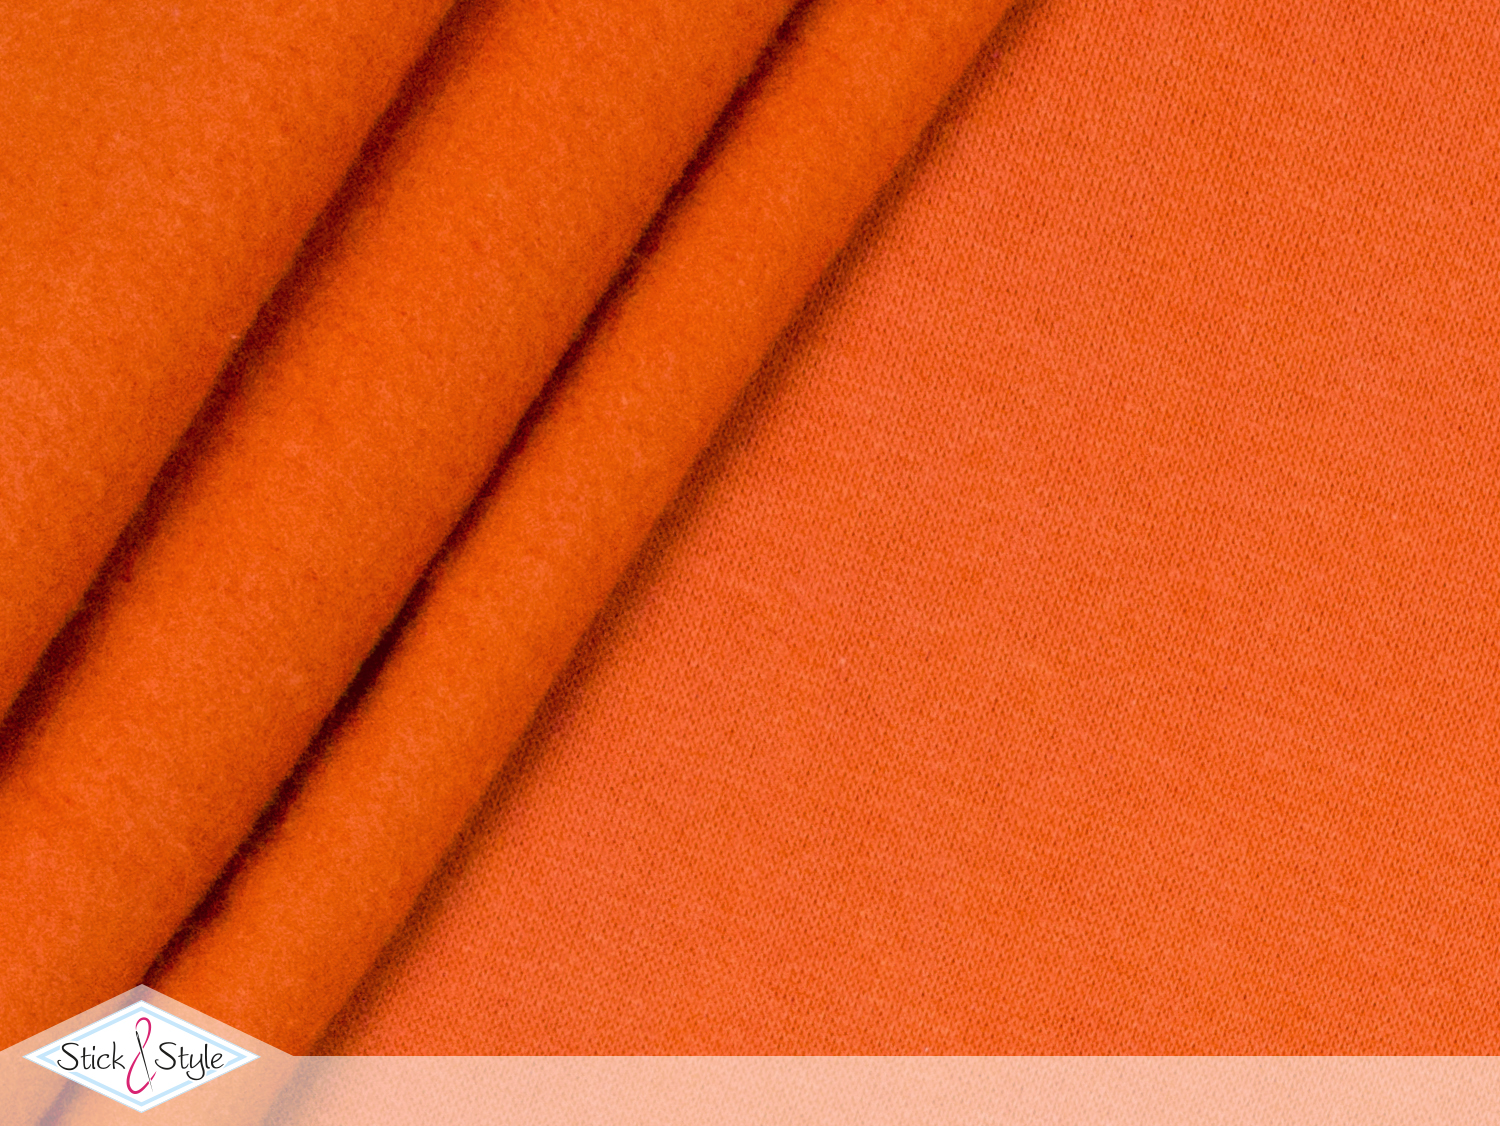 sweat stoff uni orange kuschelweich stoffe und meterware g nstig online. Black Bedroom Furniture Sets. Home Design Ideas